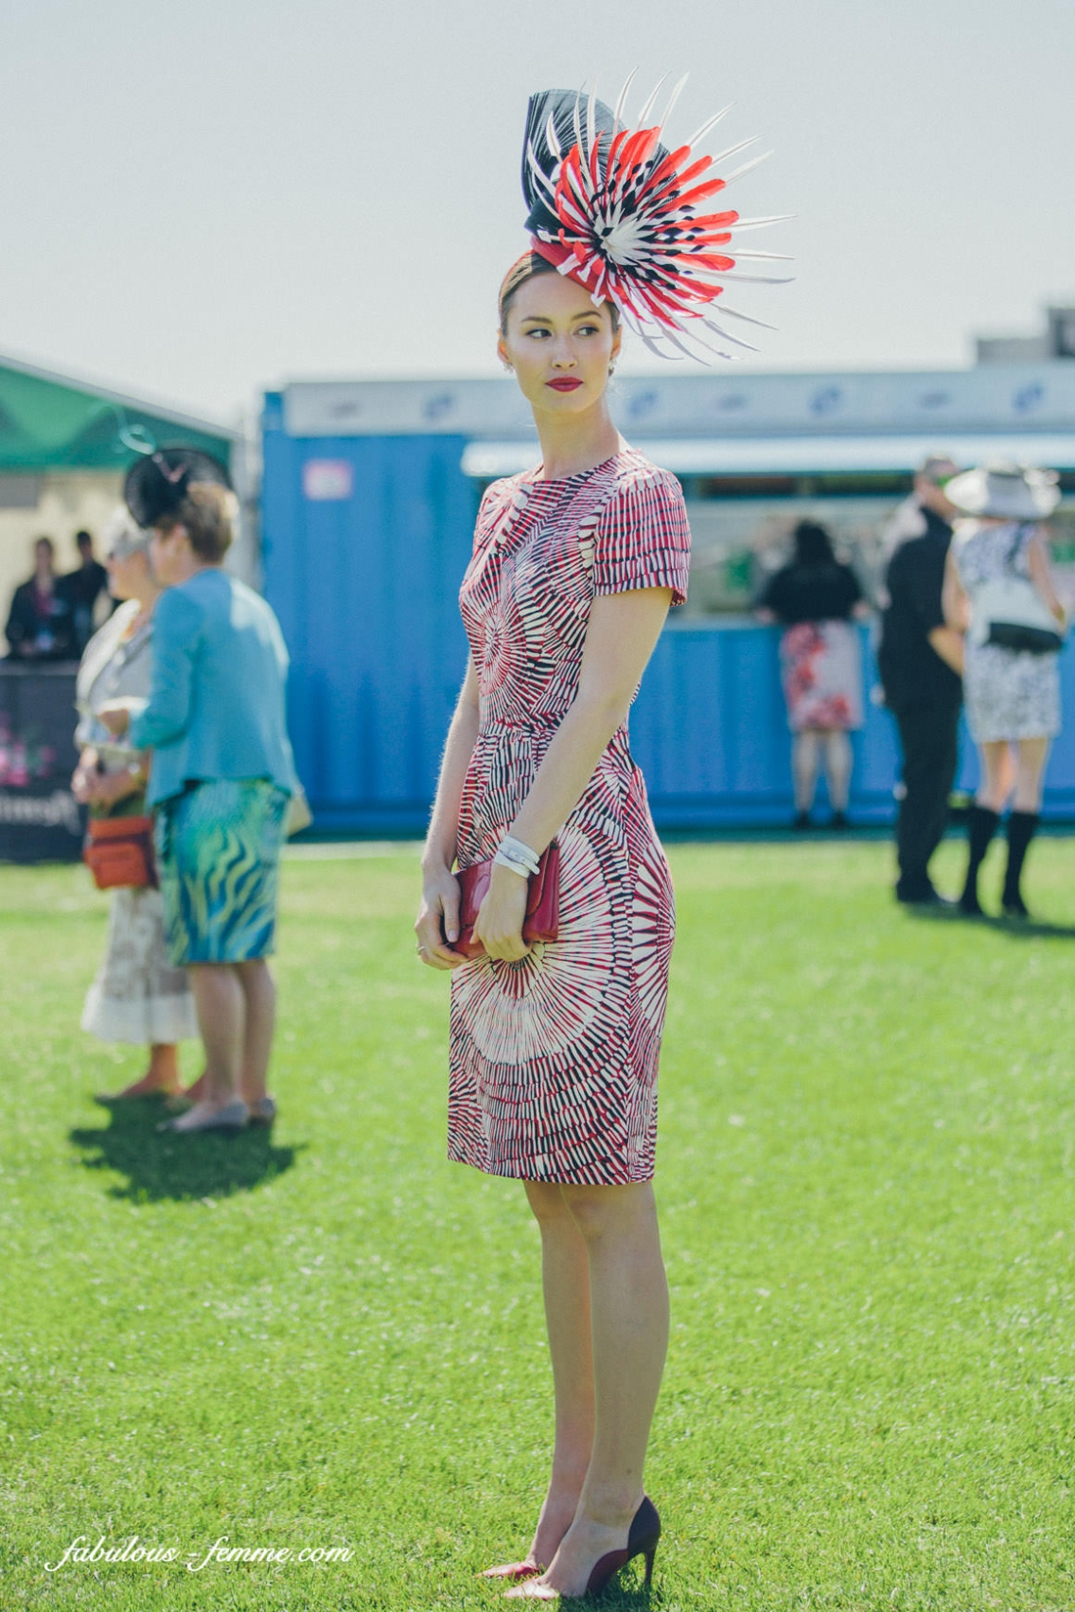 melbourne-cup-fashions-on-the-field-winner-2013-2